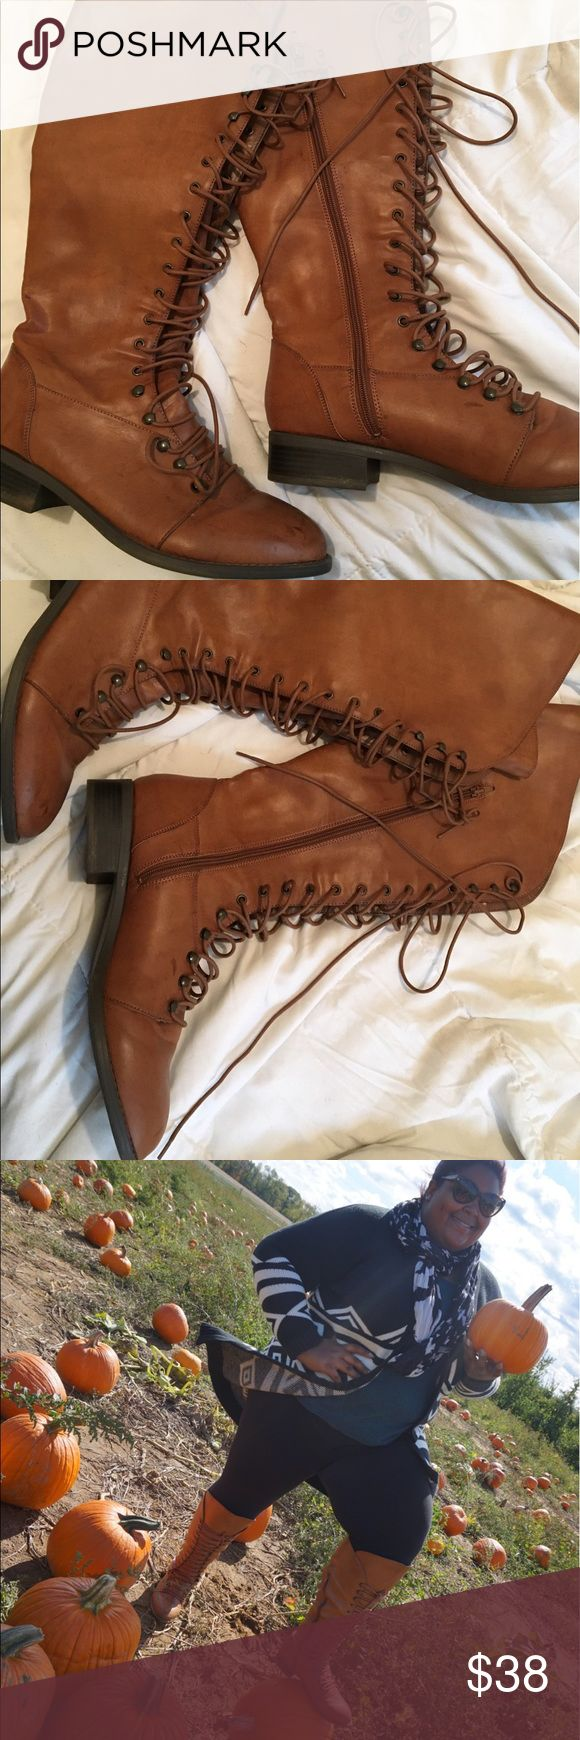 Torrid Knee high boots Perfect for fall! Worn twice. torrid Shoes Lace Up Boots